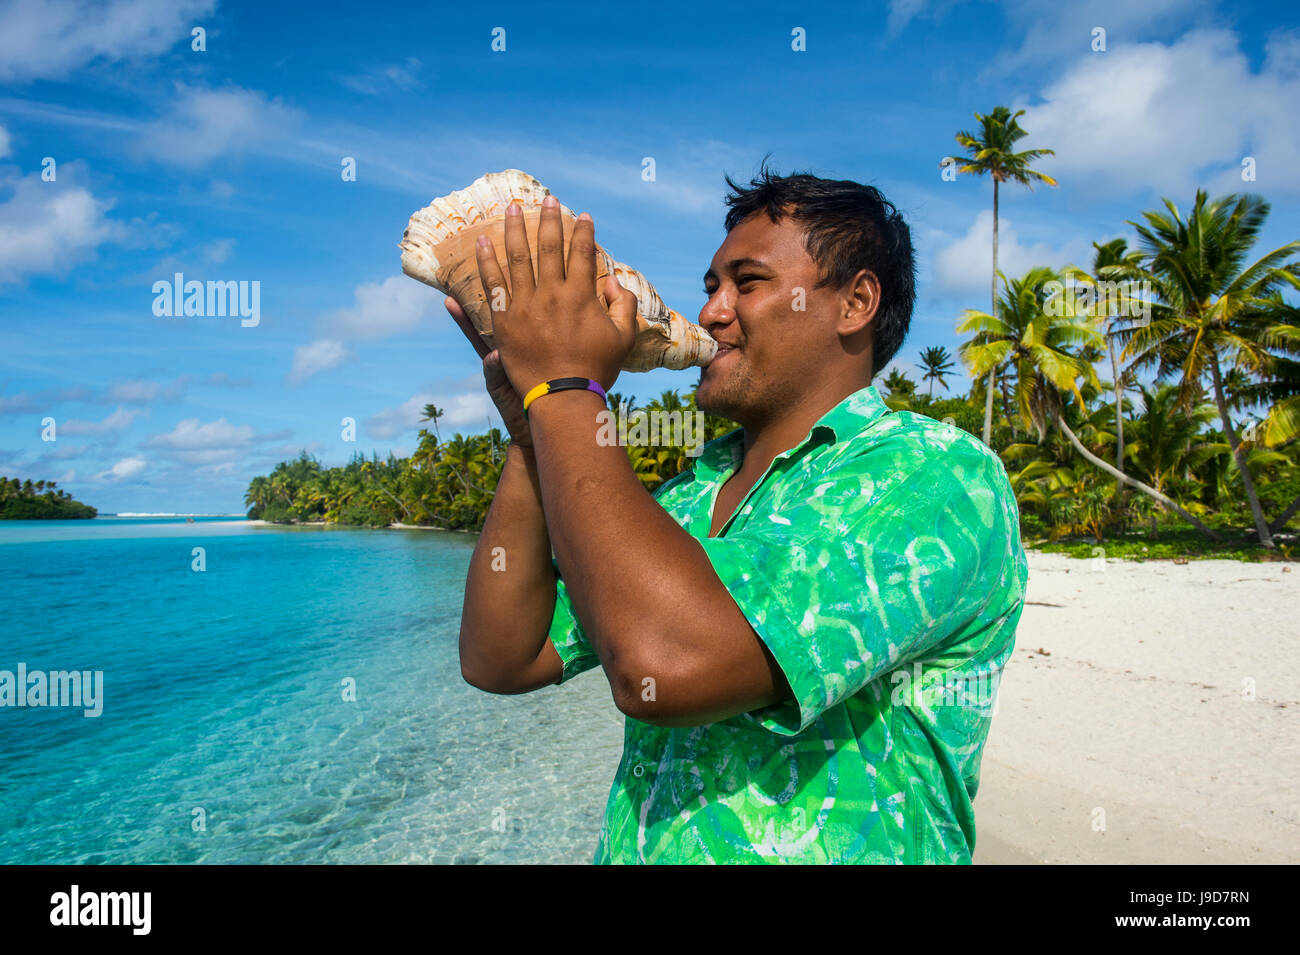 Local man blowing a huge conch, Aitutaki lagoon, Rarotonga and the Cook Islands, South Pacific, Pacific - Stock Image